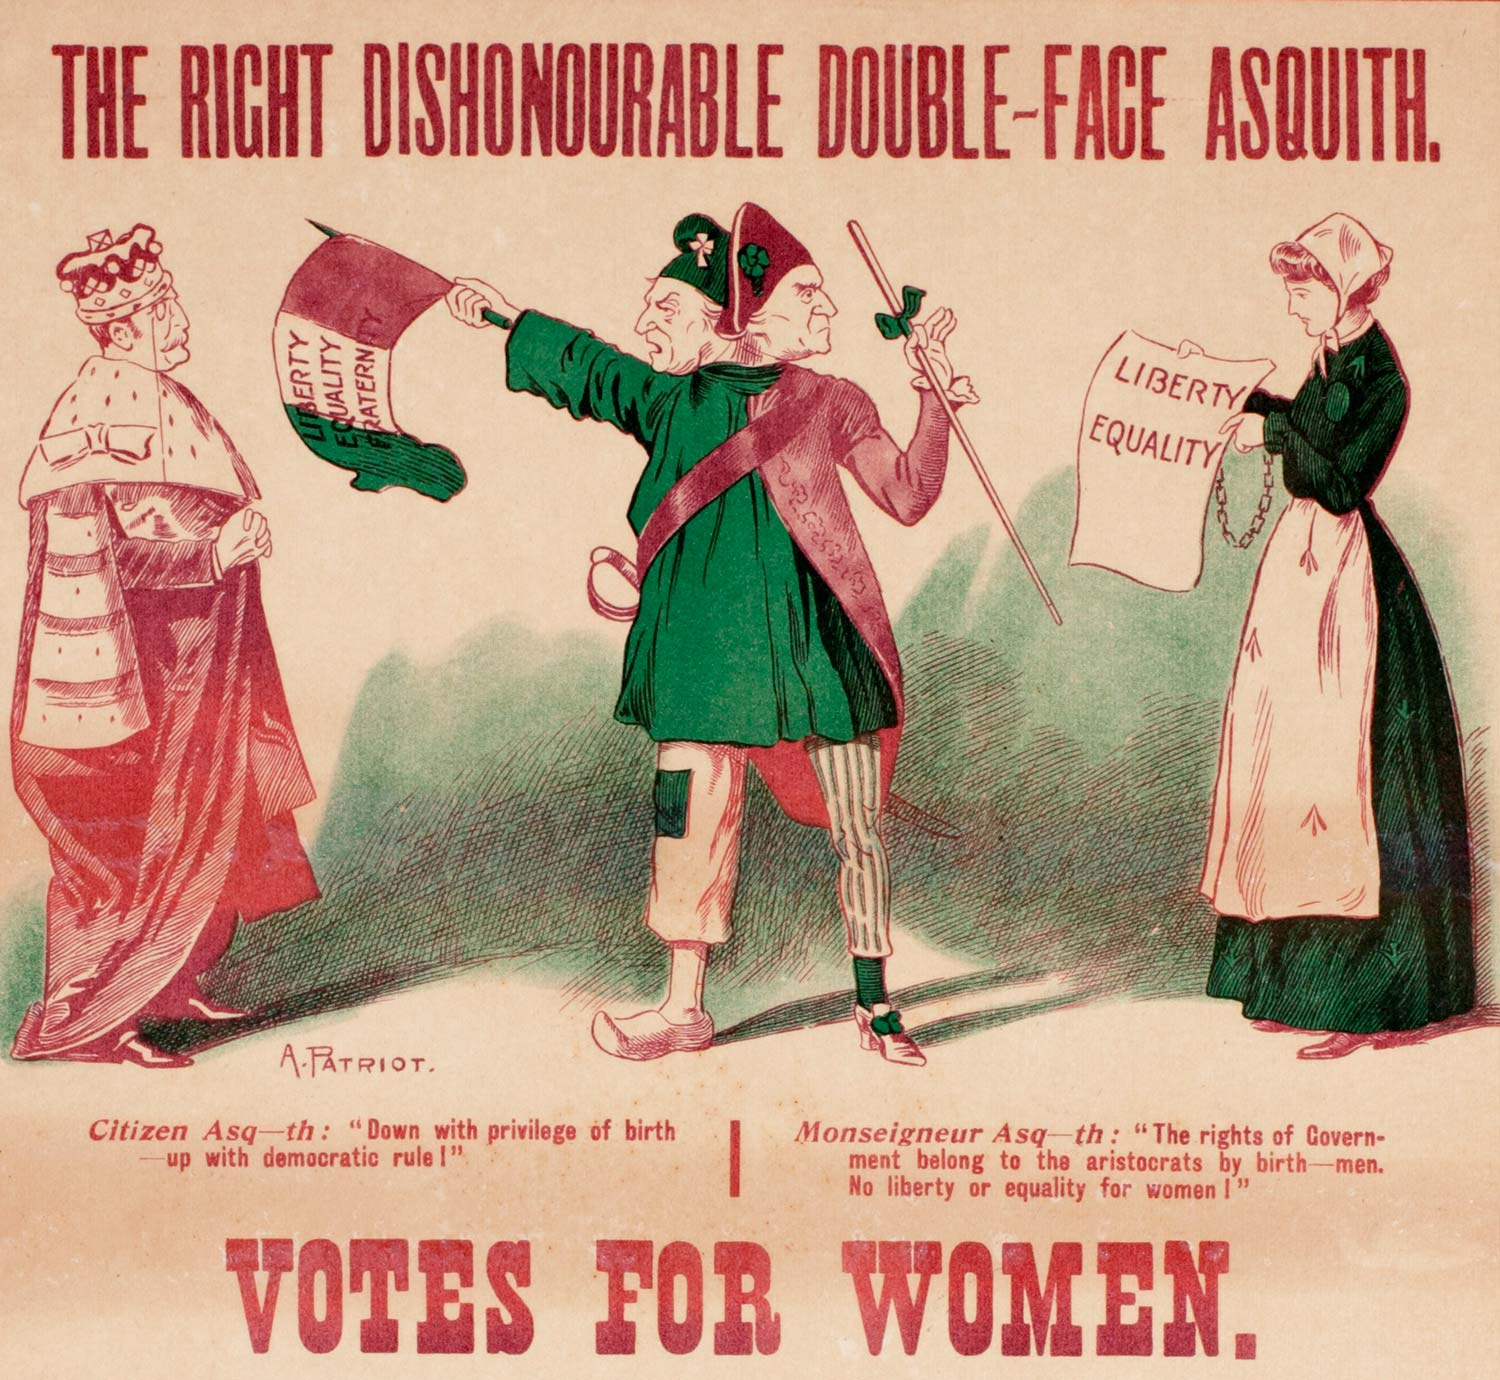 Women and servicemen excluded in electoral reform